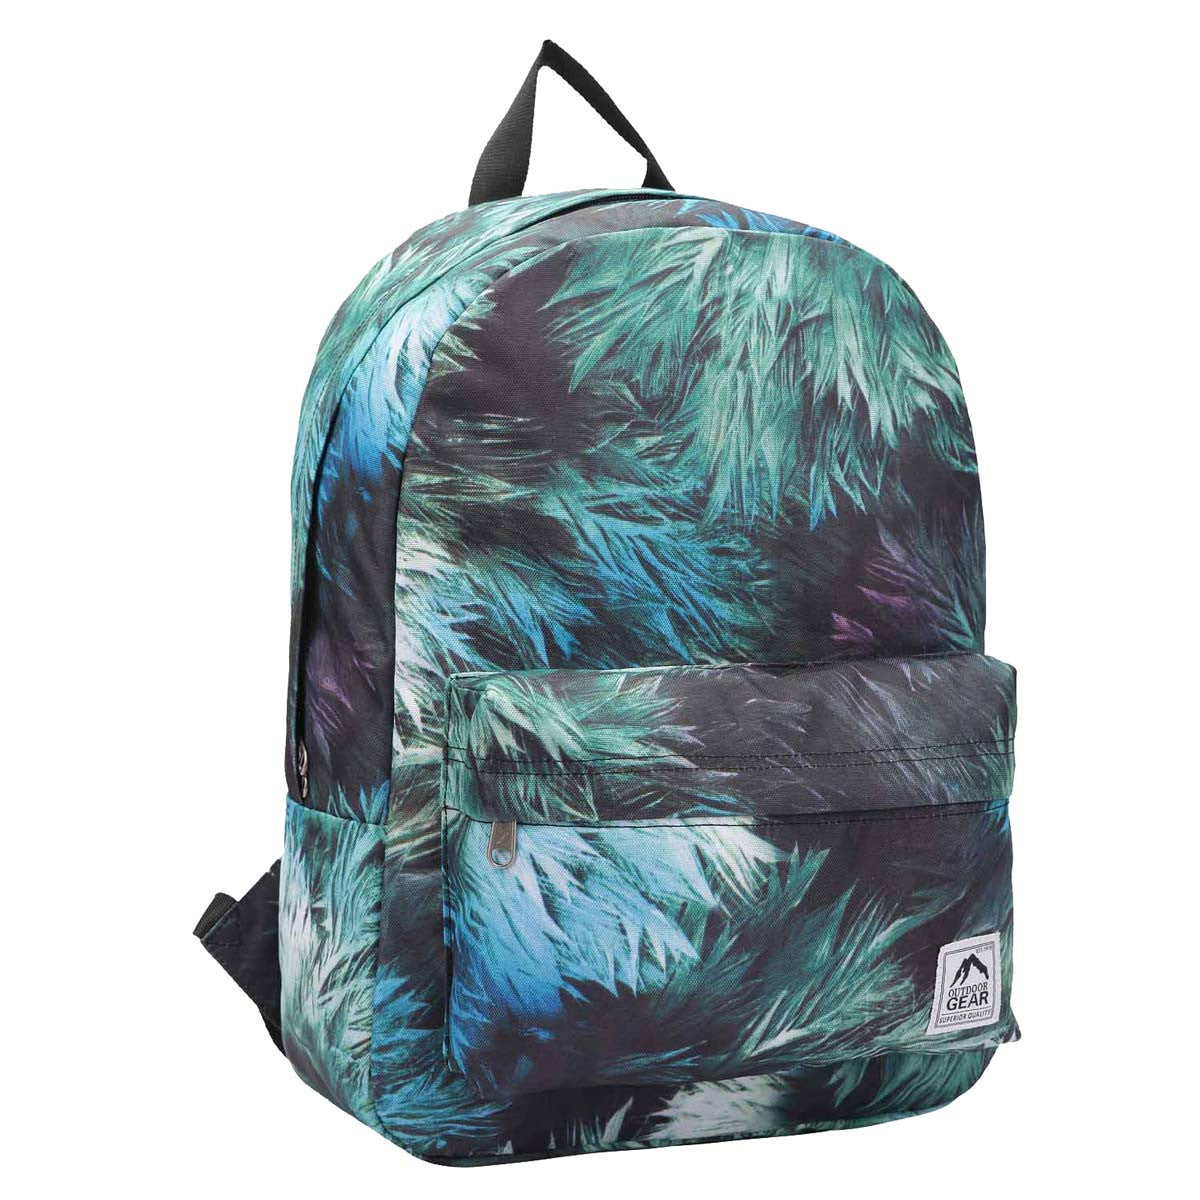 School Backpacks For Kids RL902G